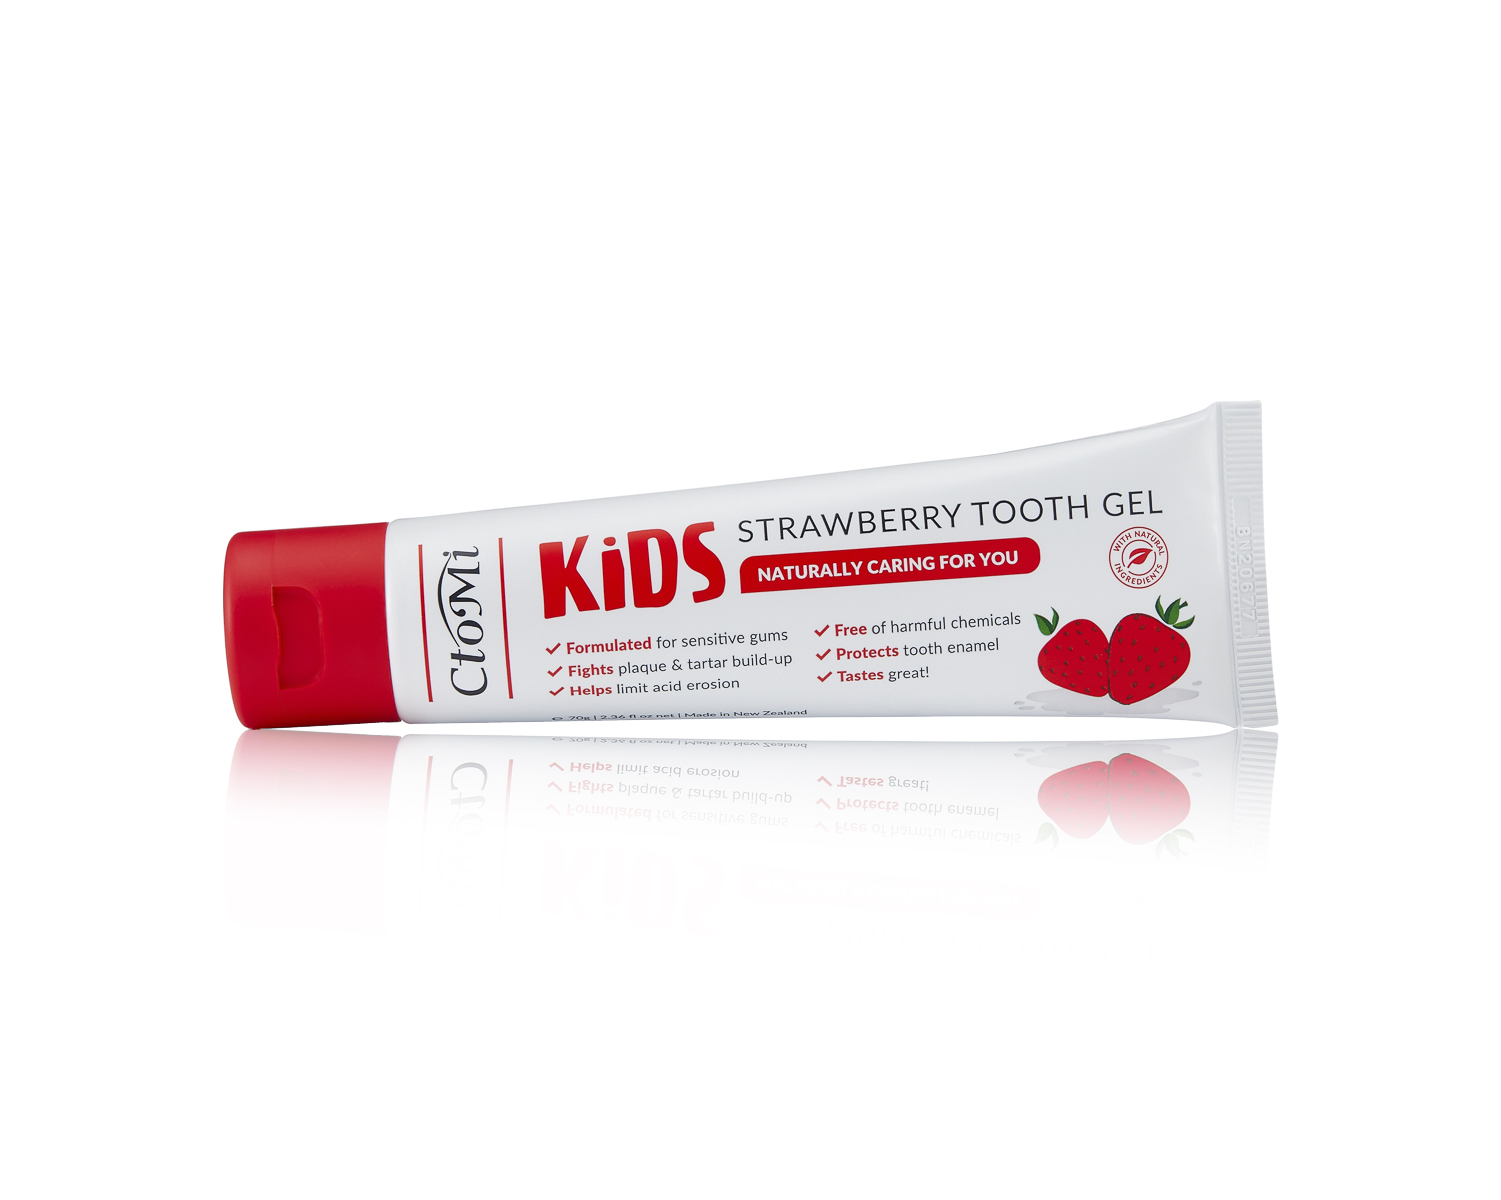 KIDS STRAWBERRY TOOTH GEL